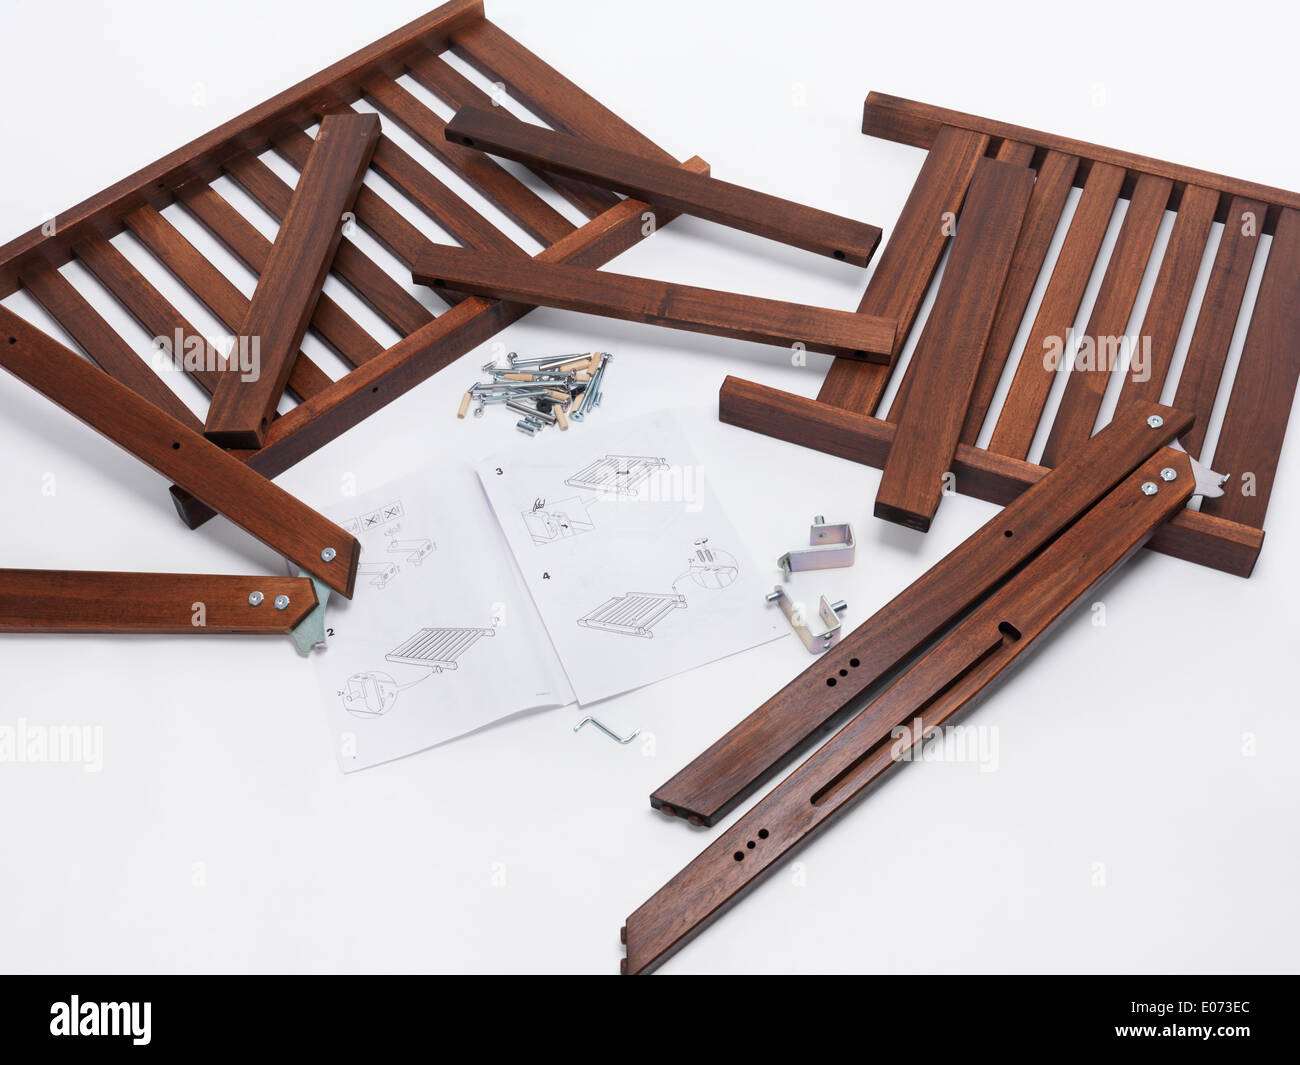 Assembling IKEA furniture parts with instructions - Stock Image